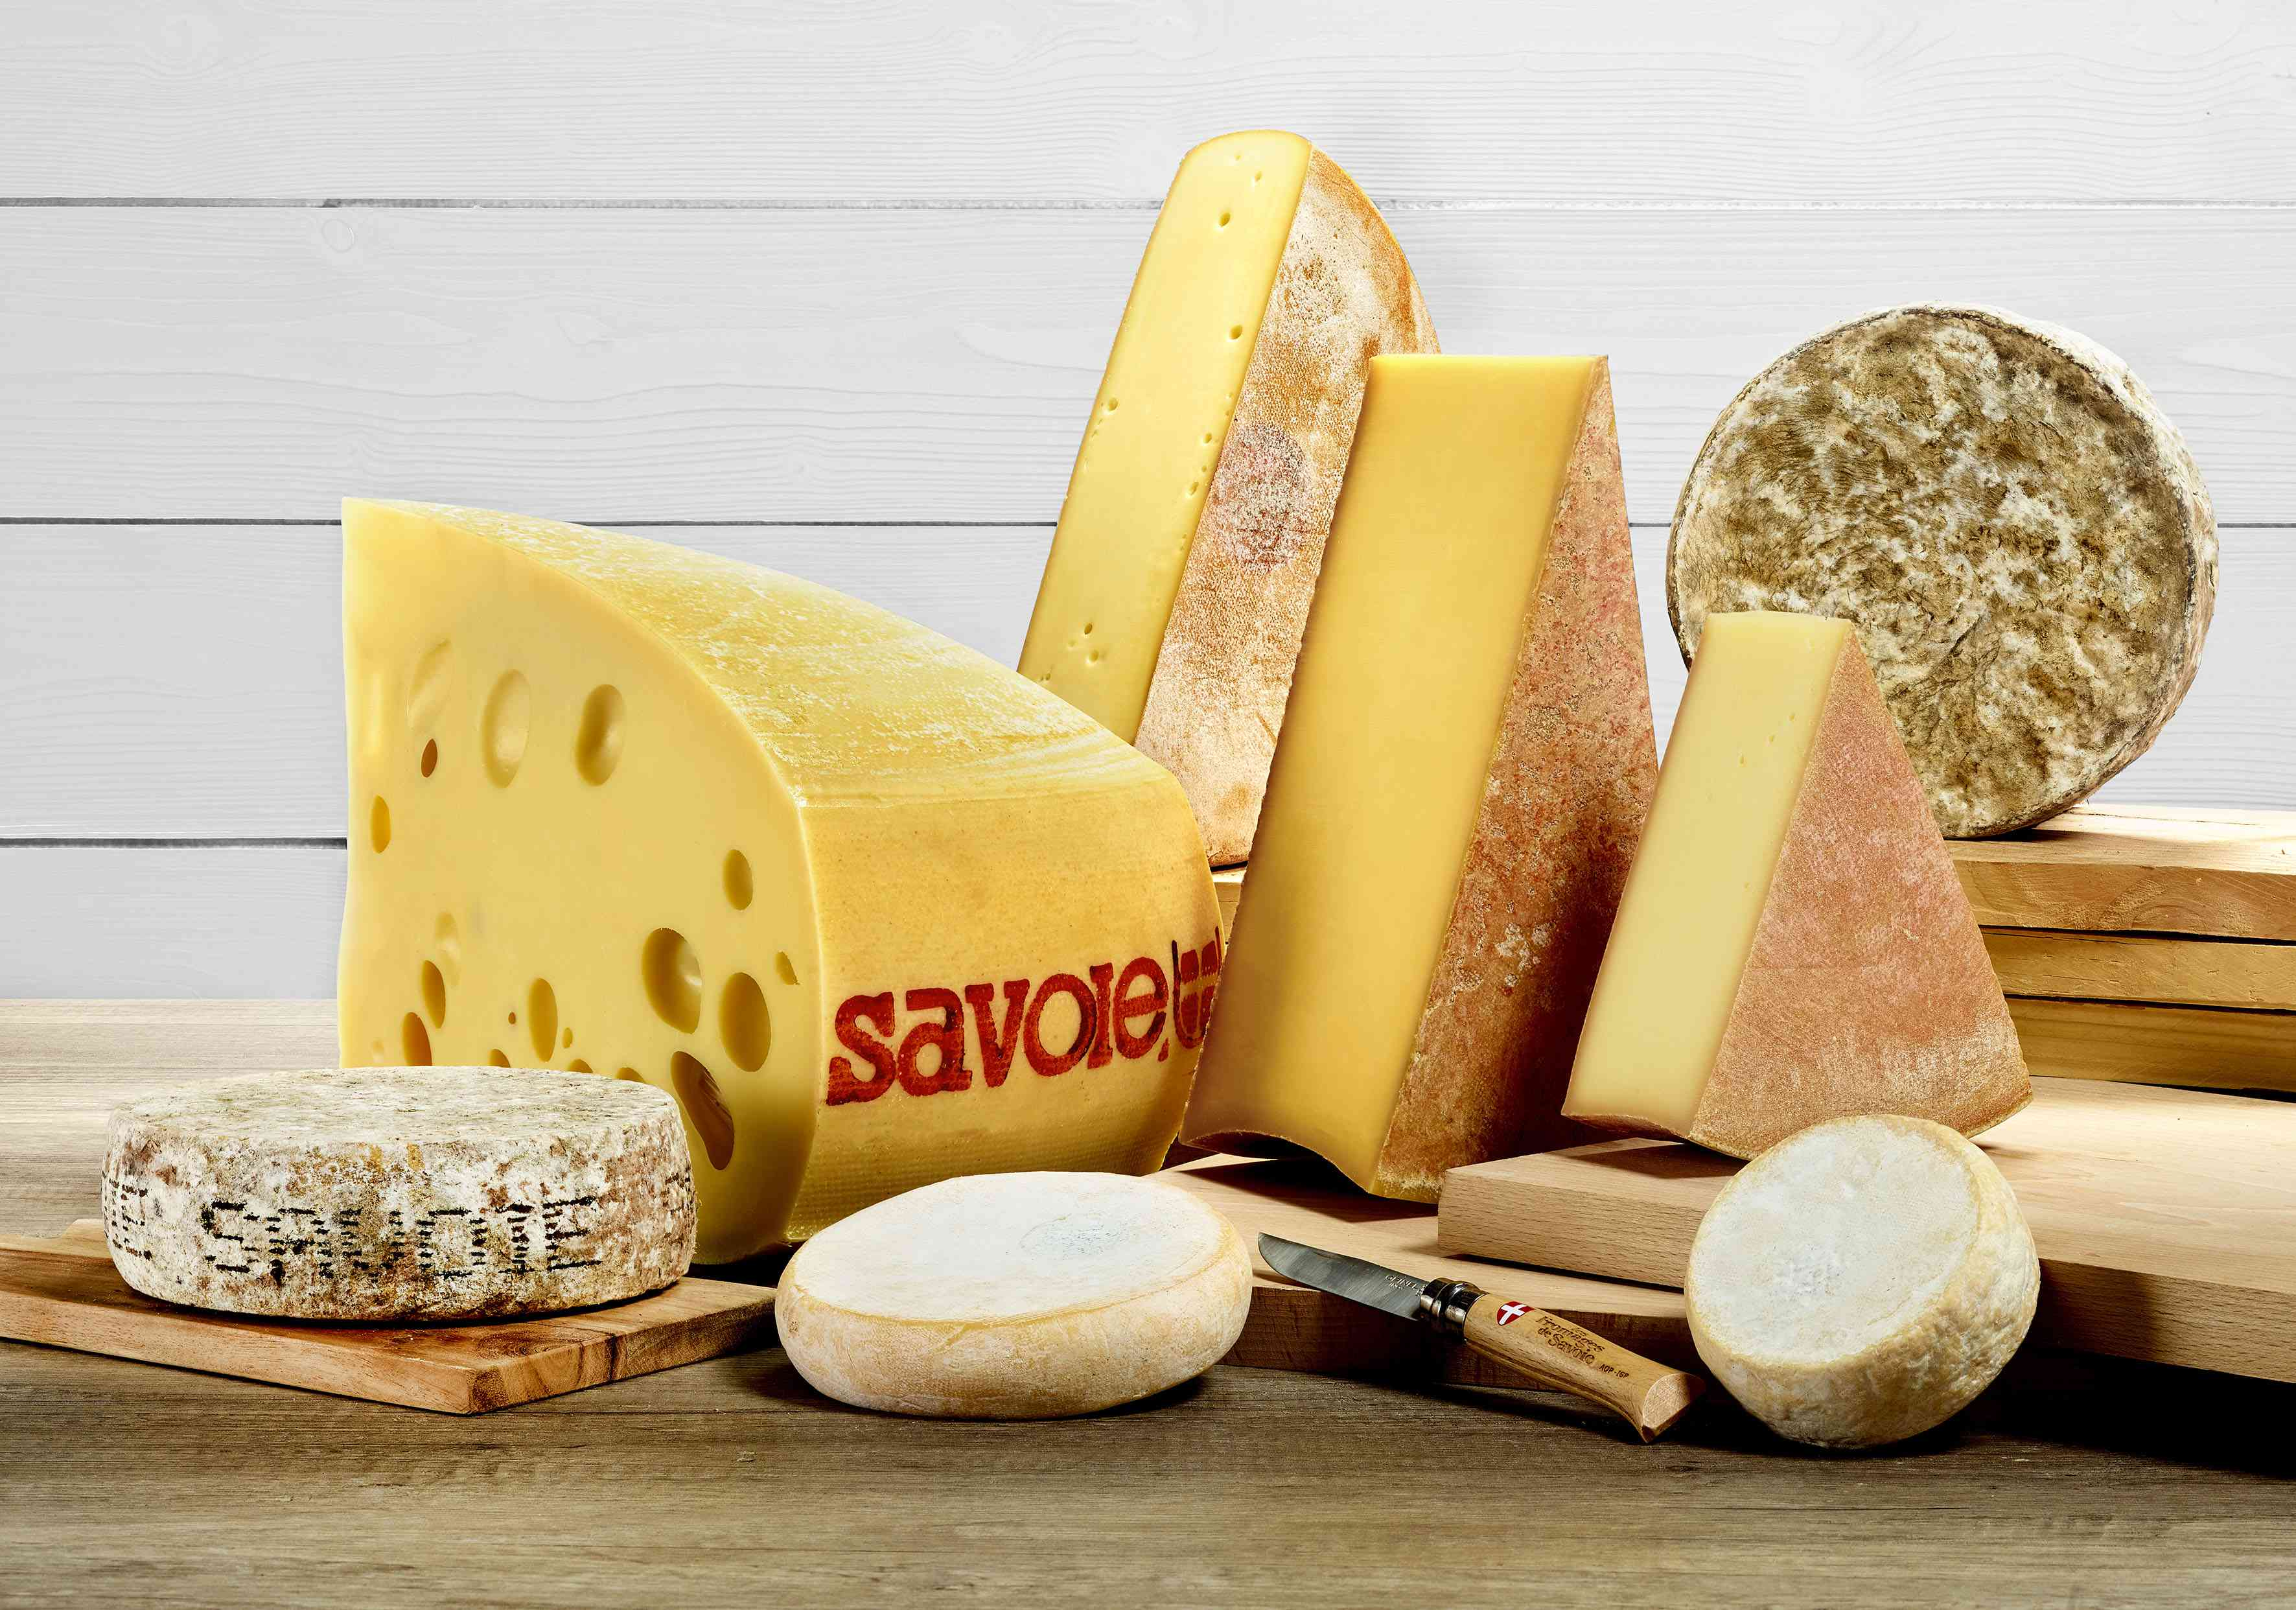 The 8 traditional cheeses of Savoie, France